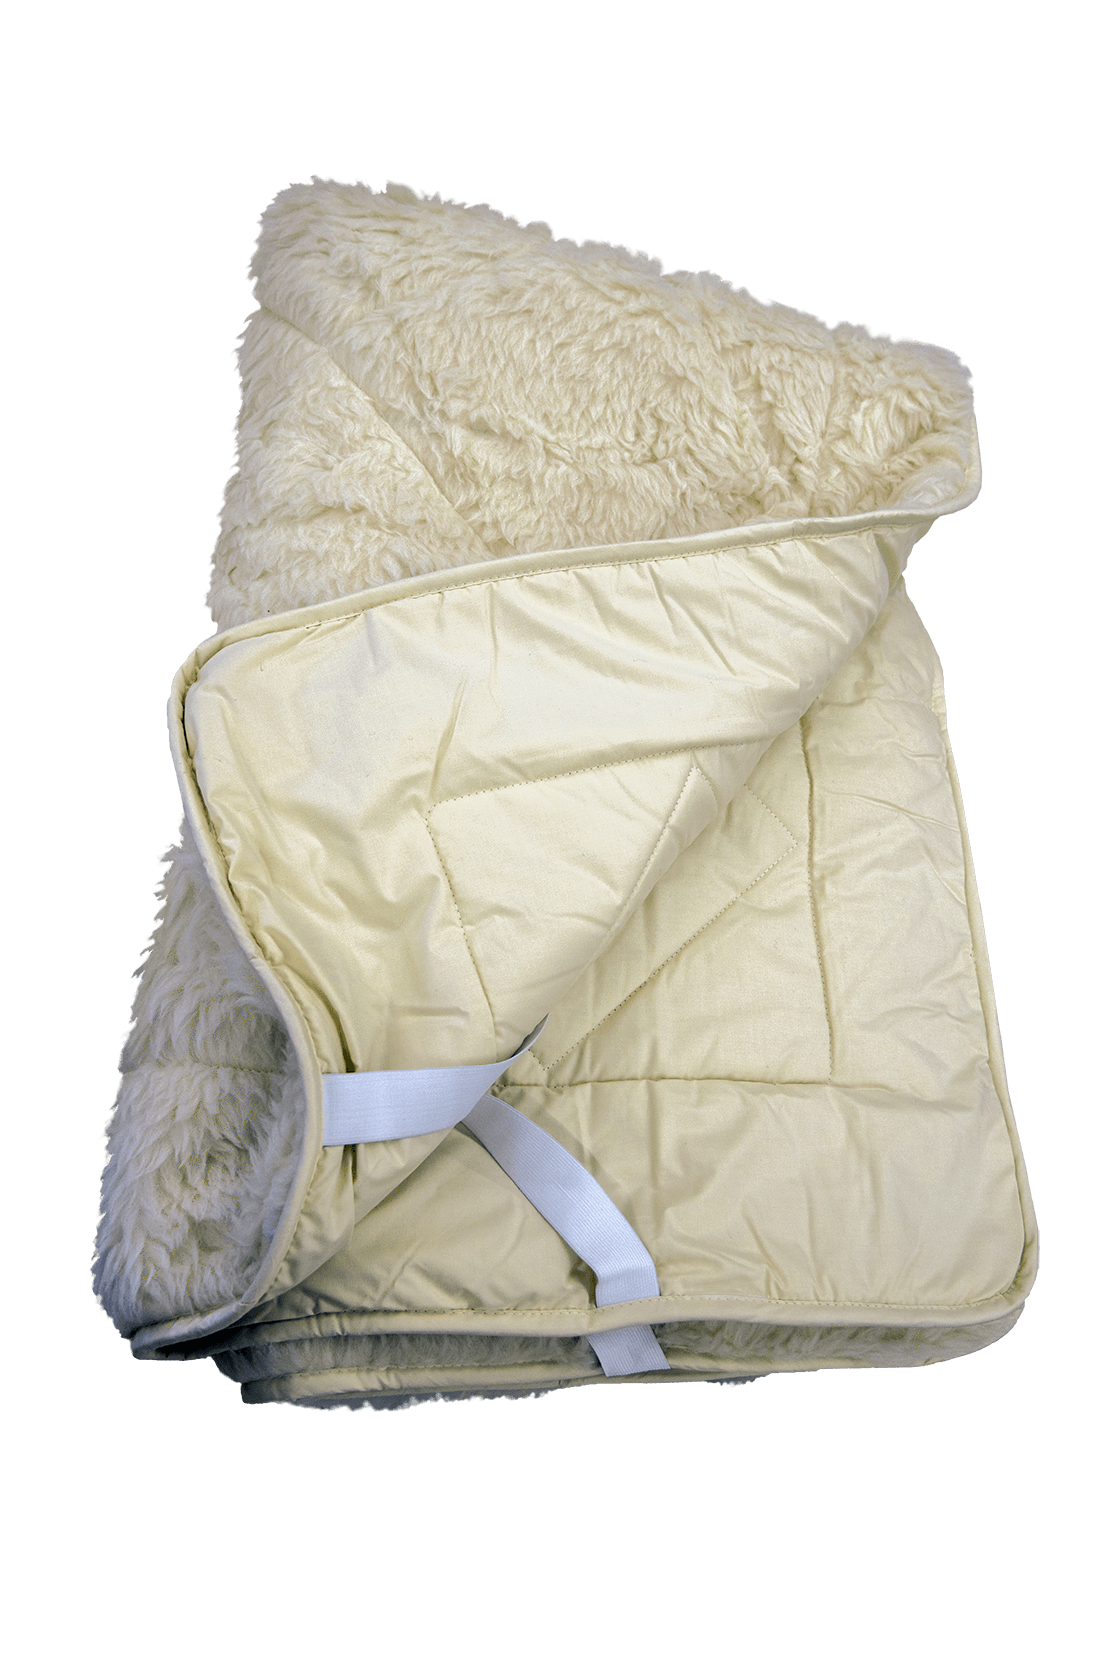 Cool & Cozy fitted two-sided mattress pad with more comfort and softness so you can sleep like a baby.